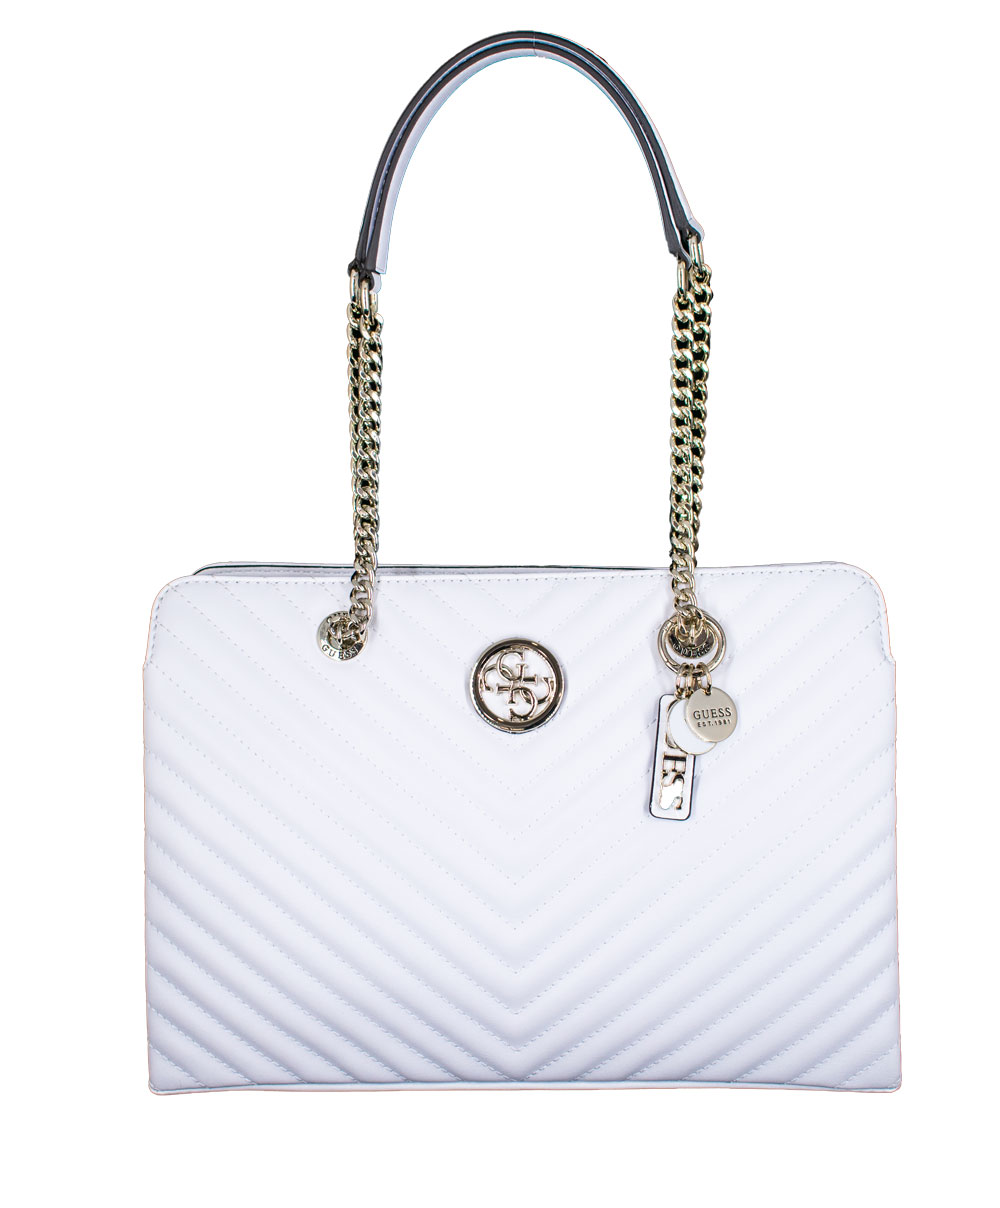 Guess Vg766310 Blakely white Accessori